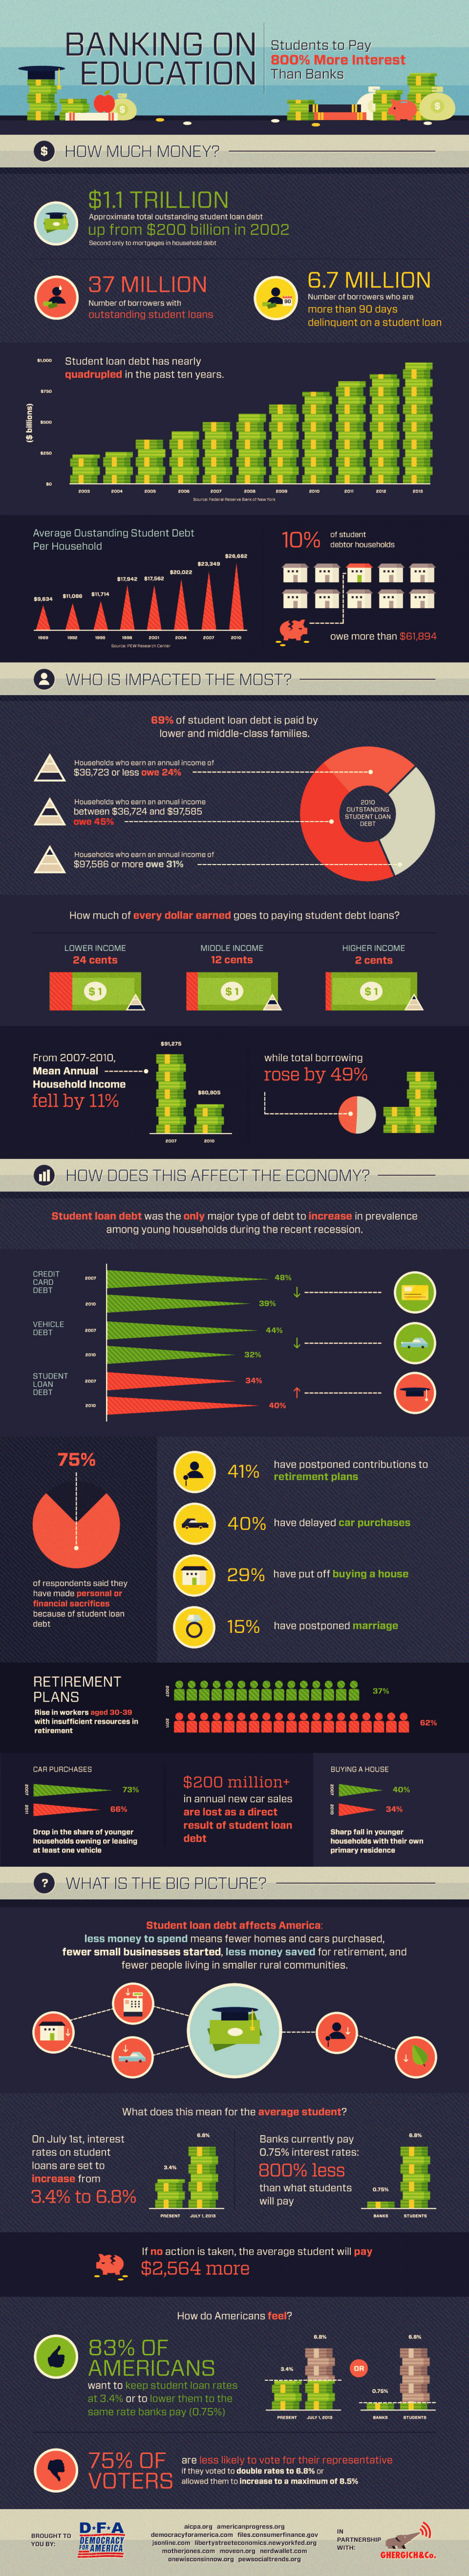 Banking on Education Infographic